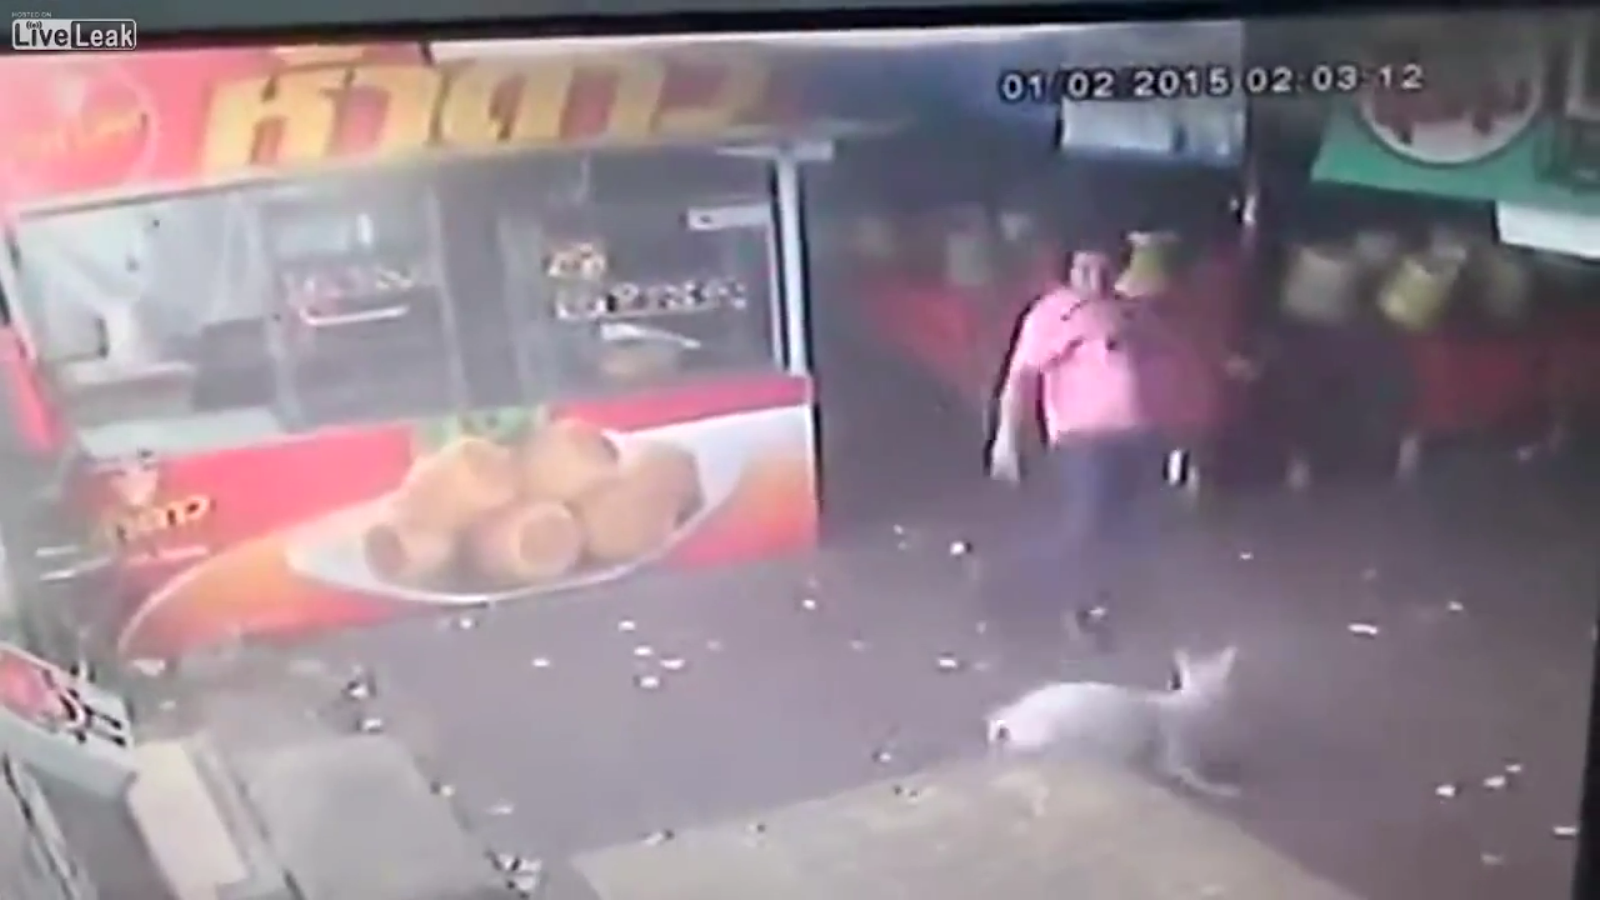 Instant Karma - A Guy Gets He Deserves after Trying to Kick a Dog